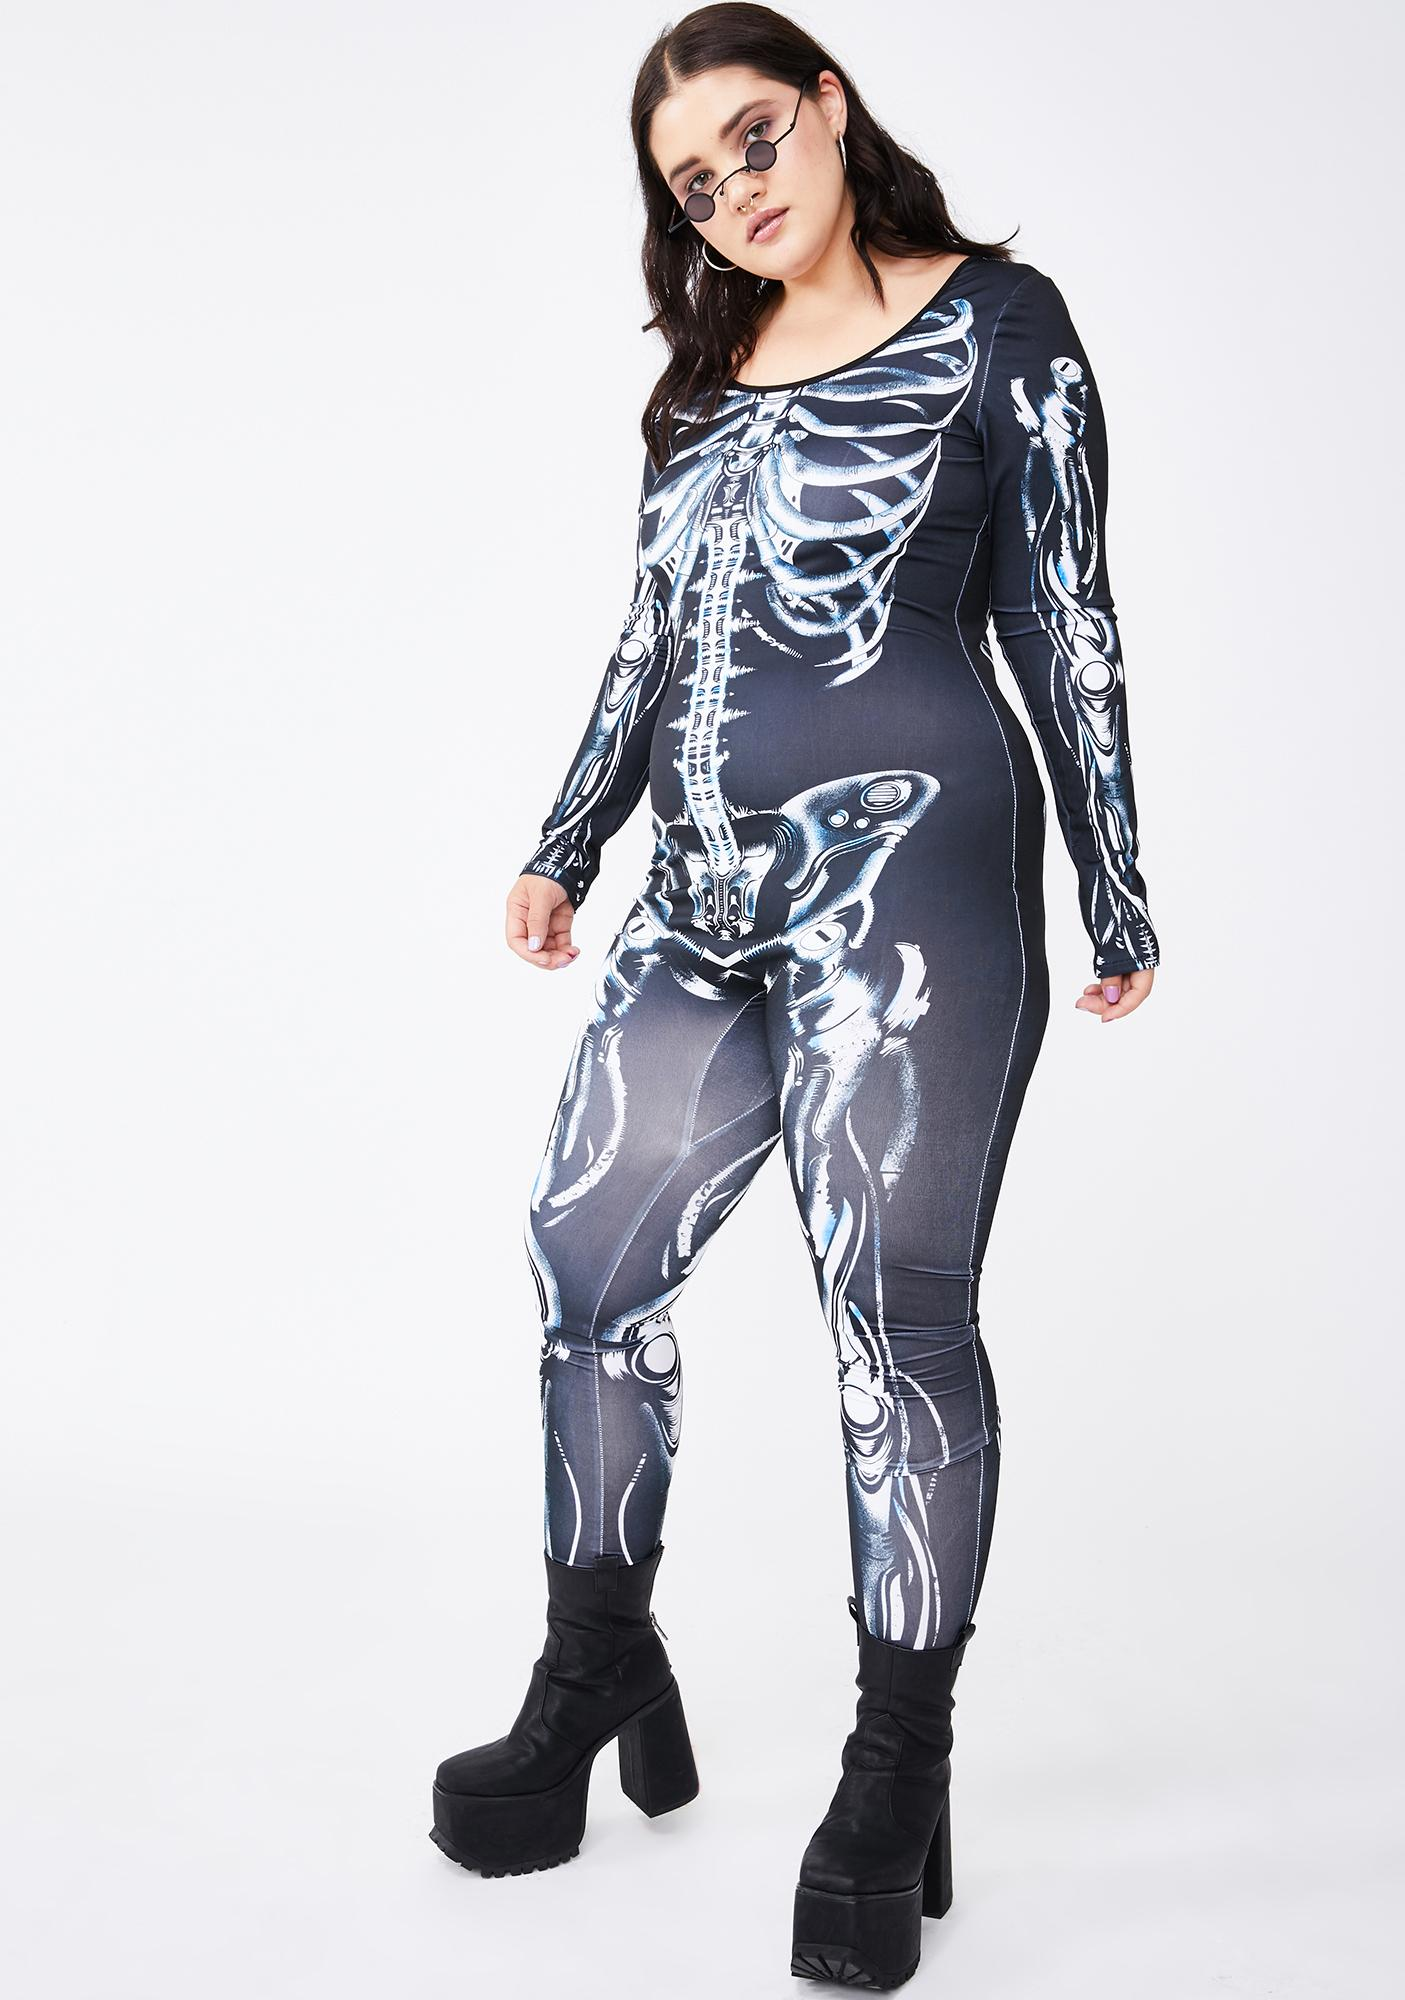 Queen Bionic Bonez Skeleton Catsuit